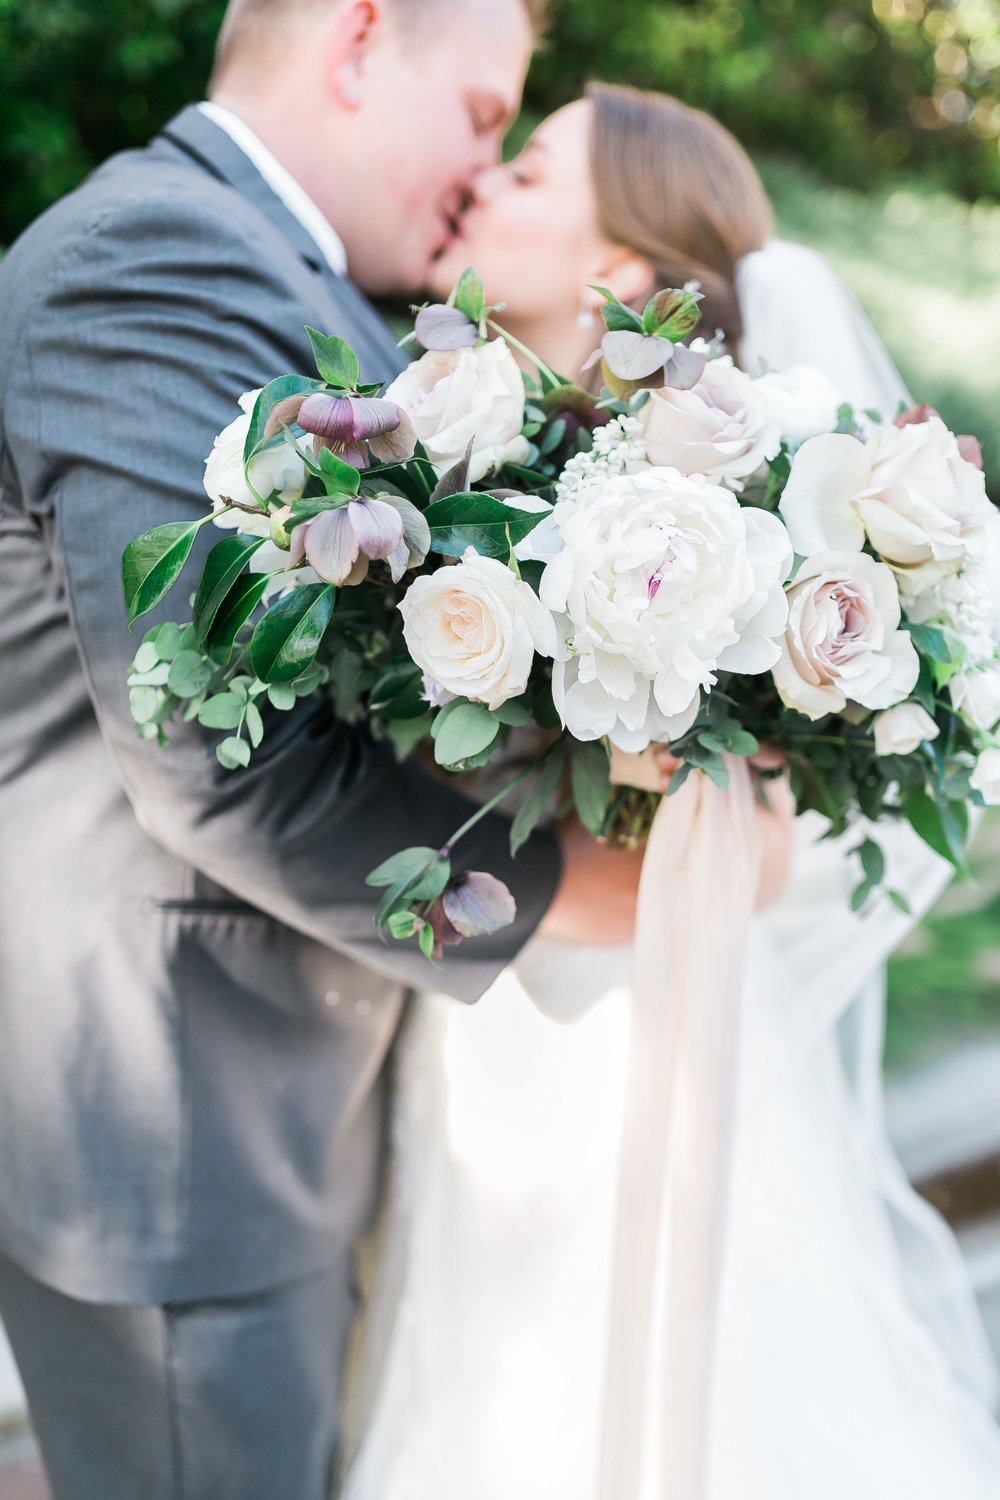 Bridal bouquet of hellebore, peonies, ranunculus and other spring florals.